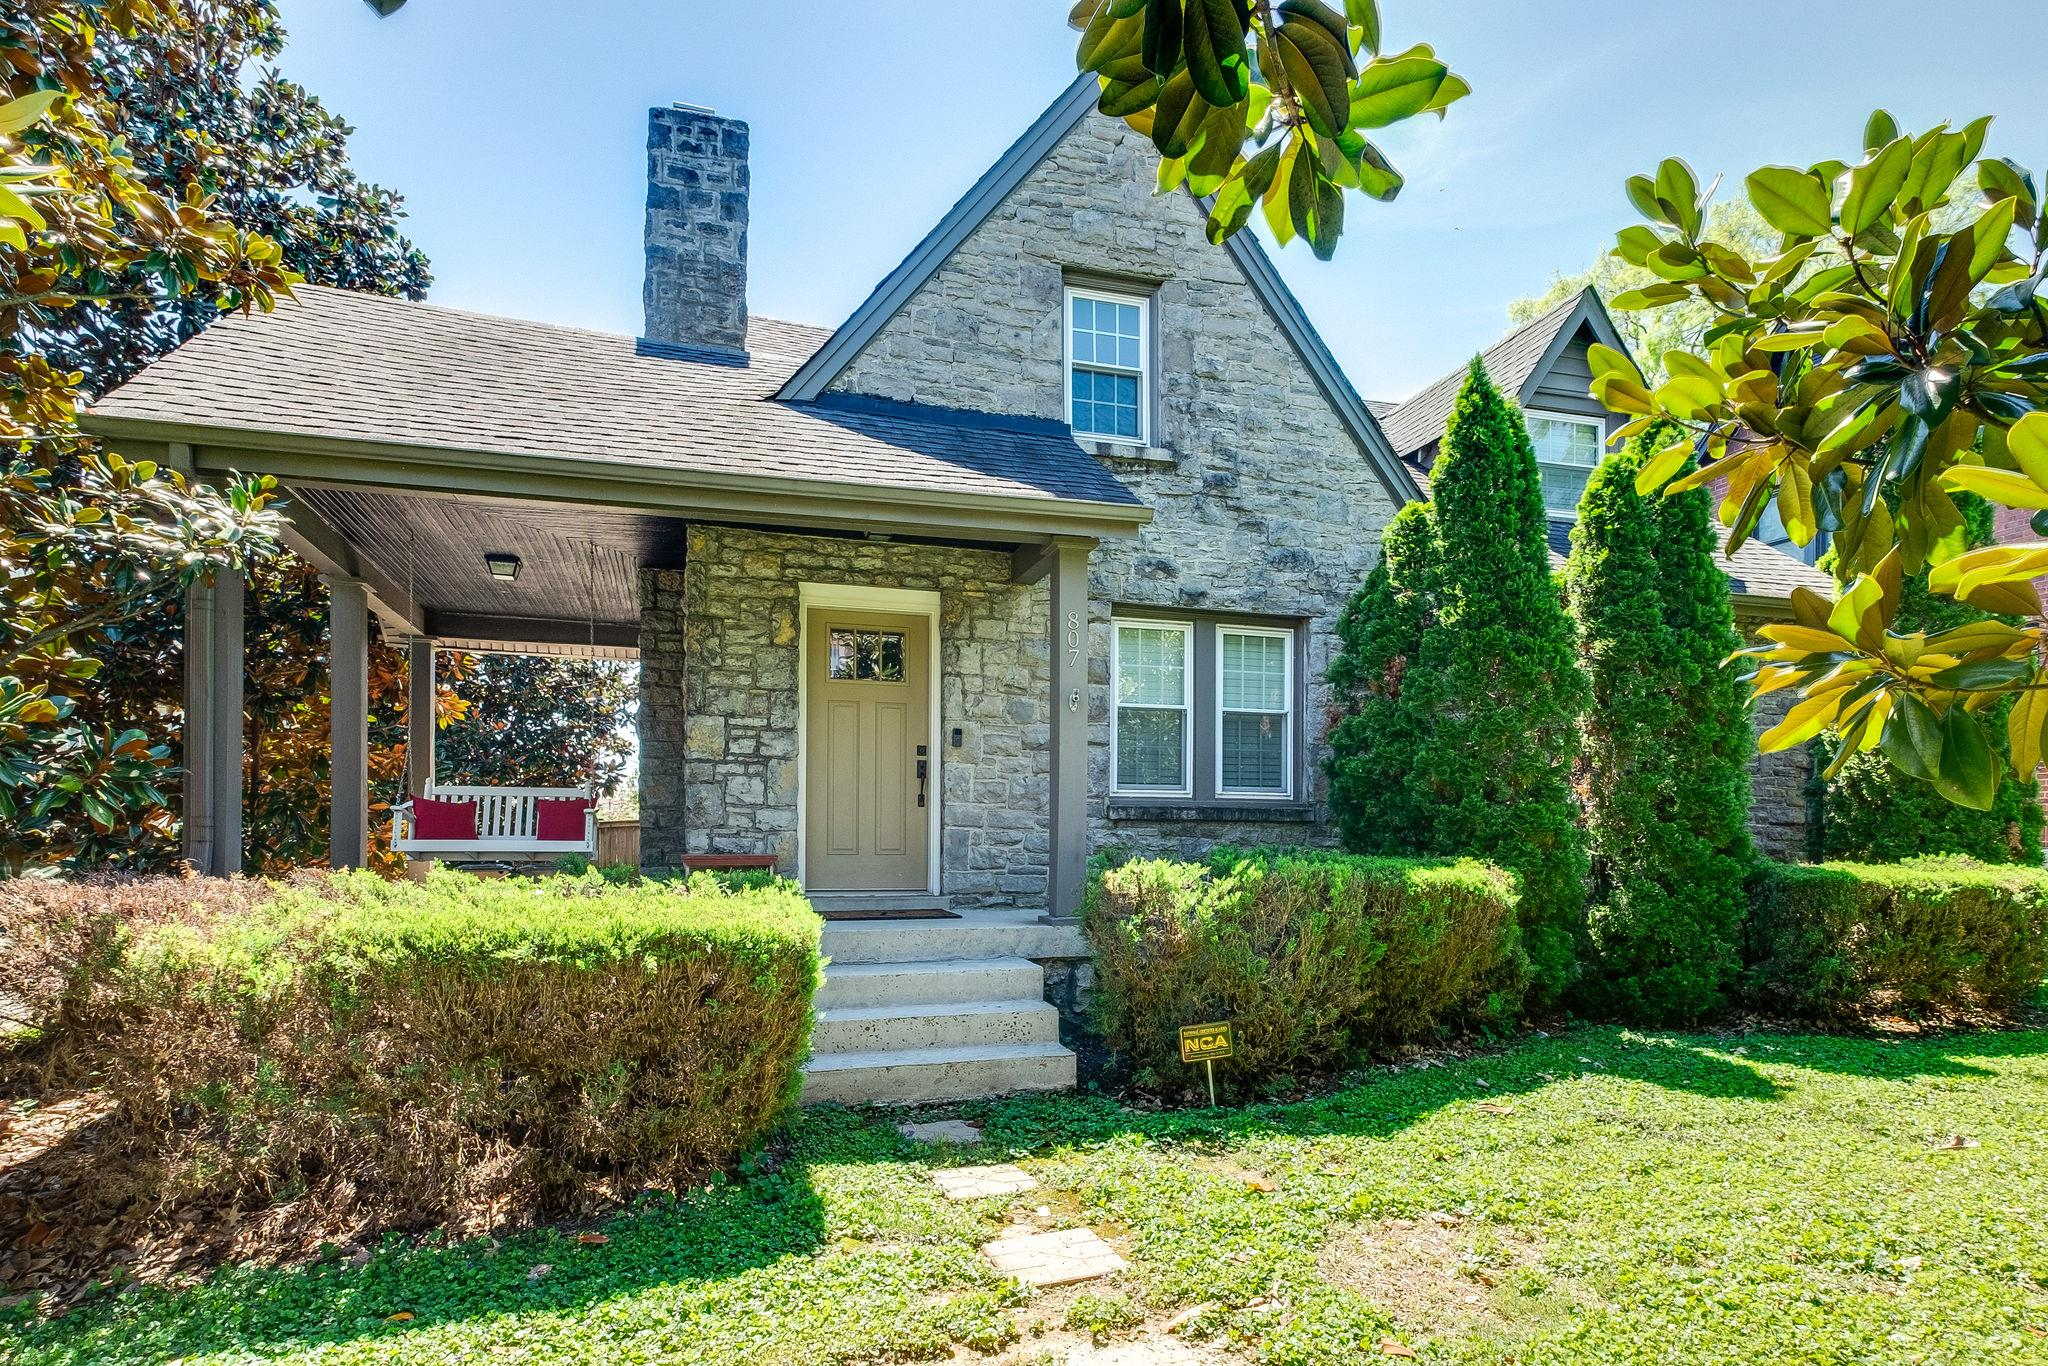 807 Hillview Hts, Nashville-Southeast in Davidson County County, TN 37204 Home for Sale